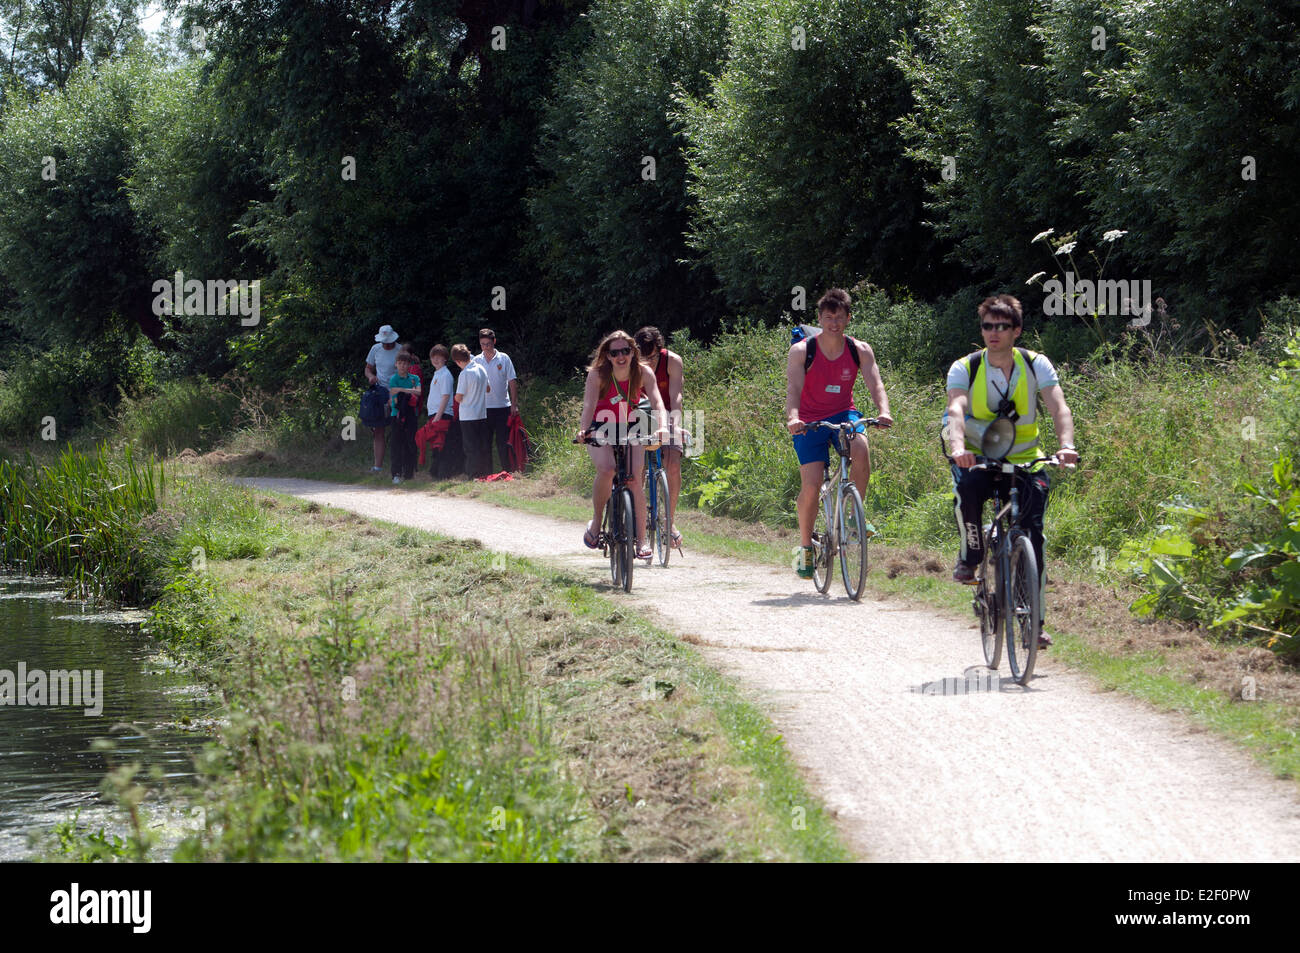 Cambridge May Bumps, cyclists on the River Cam towpath - Stock Image